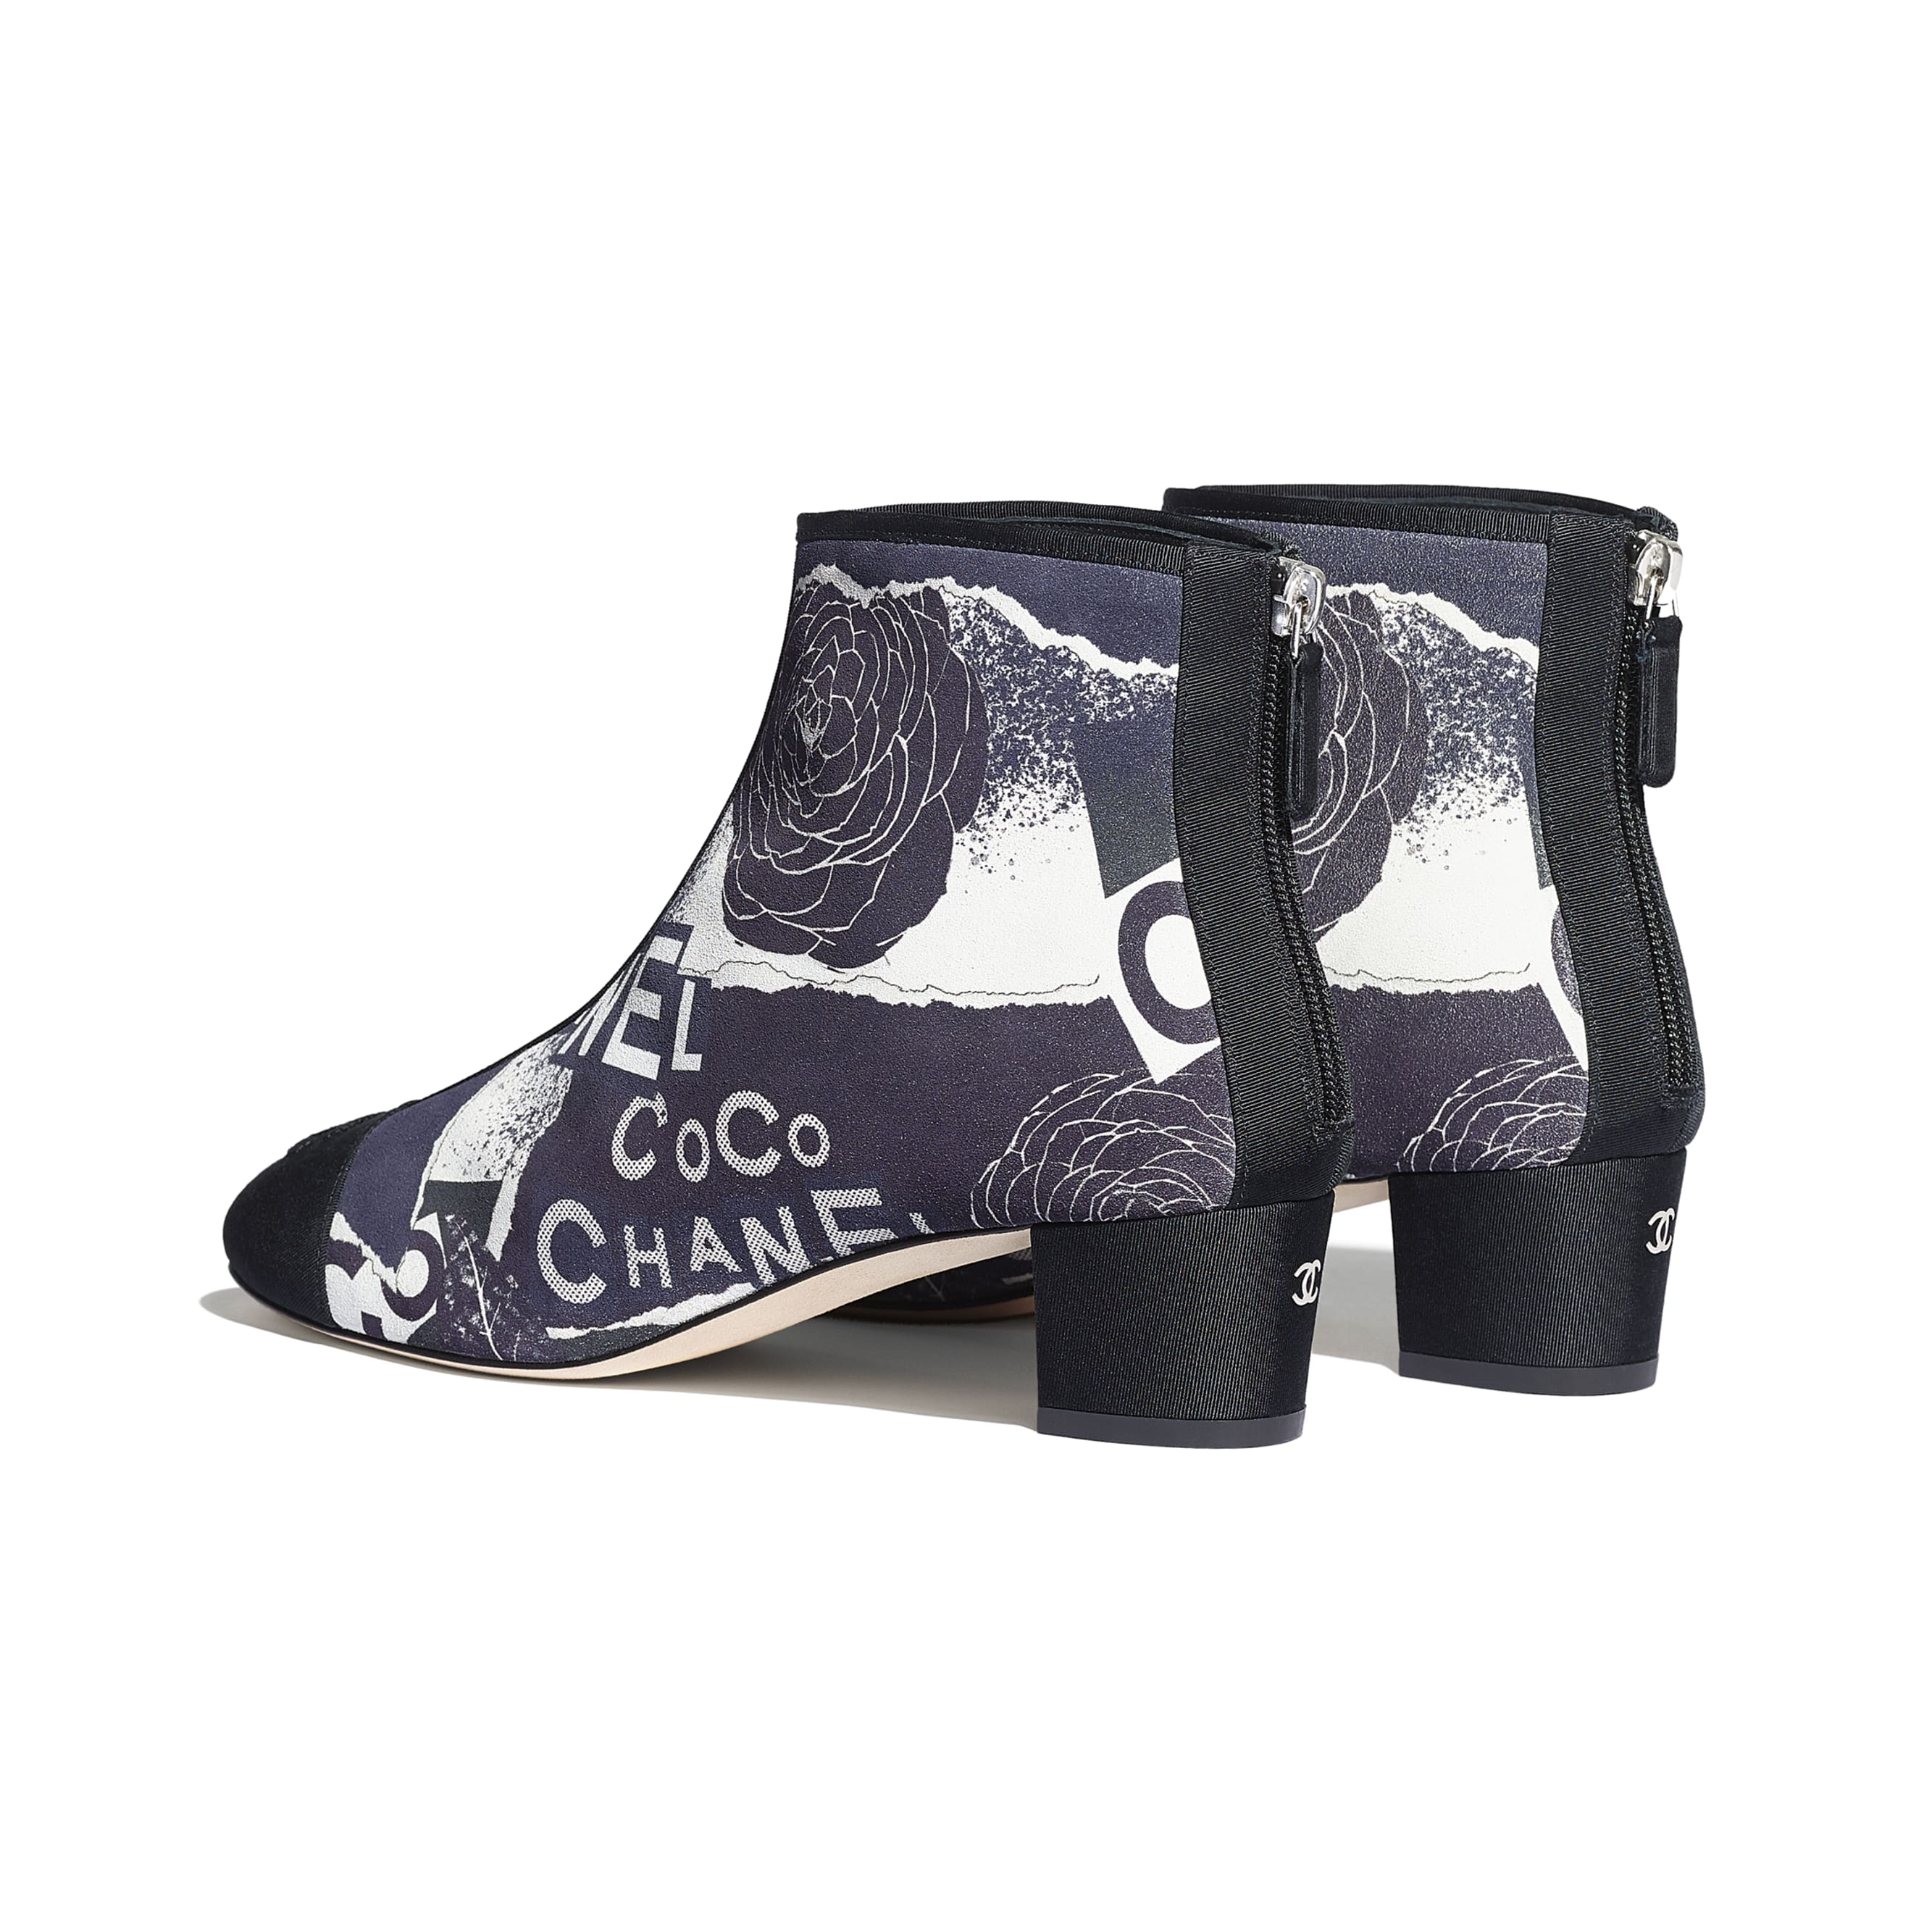 Ankle Boots - Navy Blue, White & Silver - Printed Calfskin & Grosgrain - CHANEL - Other view - see standard sized version